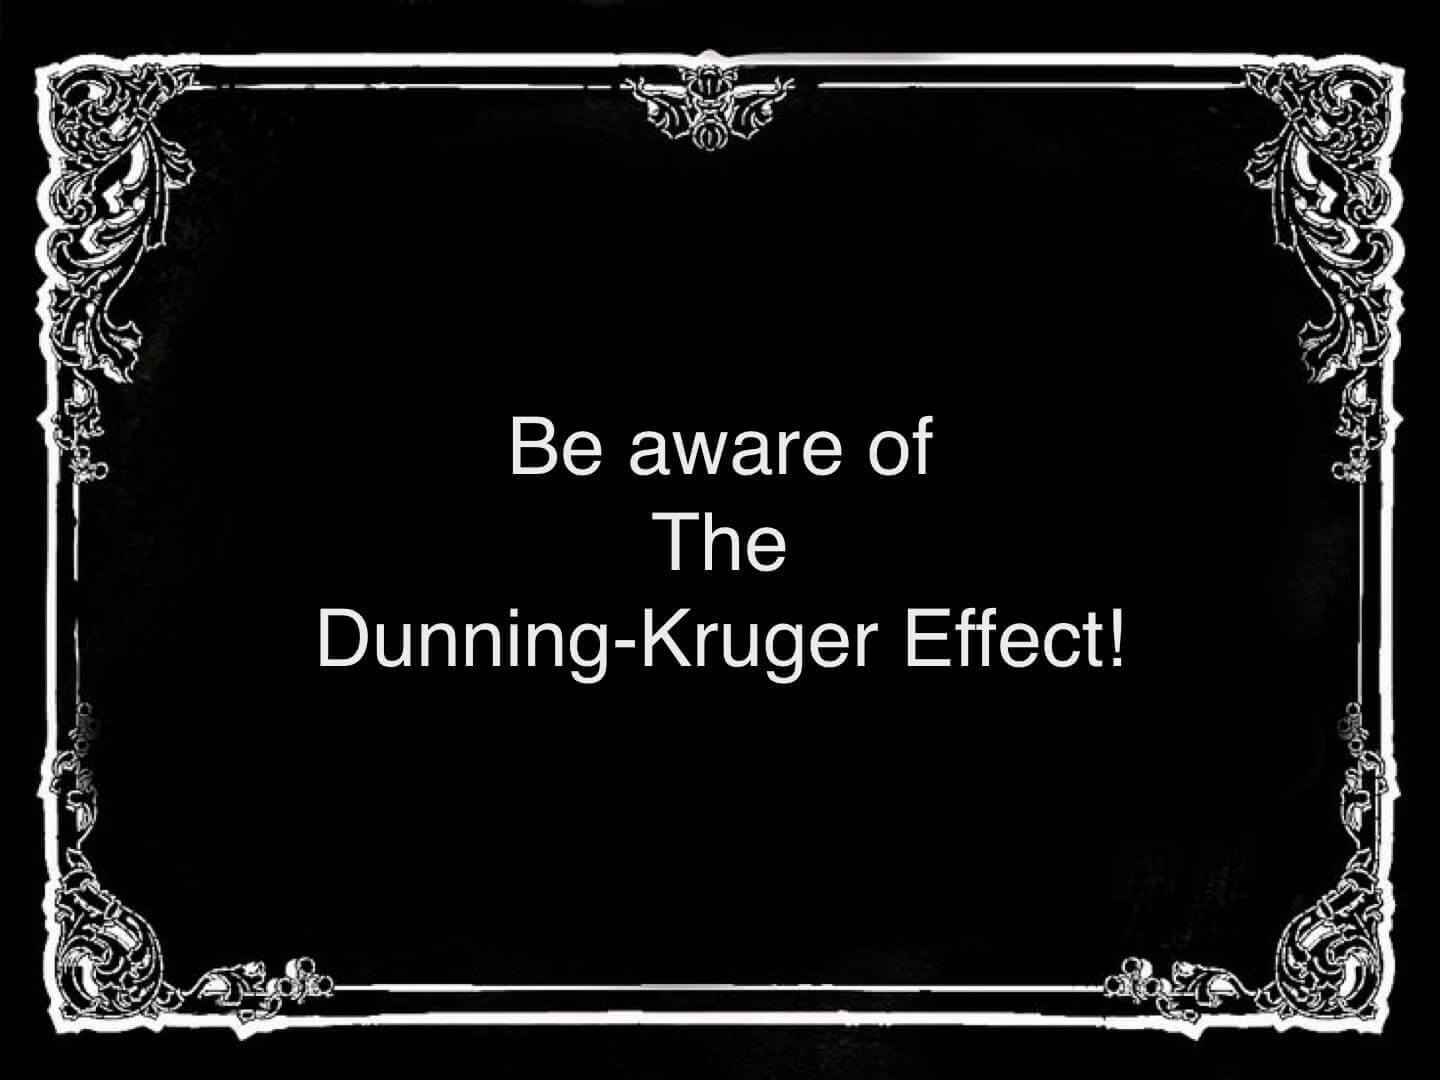 Daniel Khan became aware of the Danning Kruger Effect